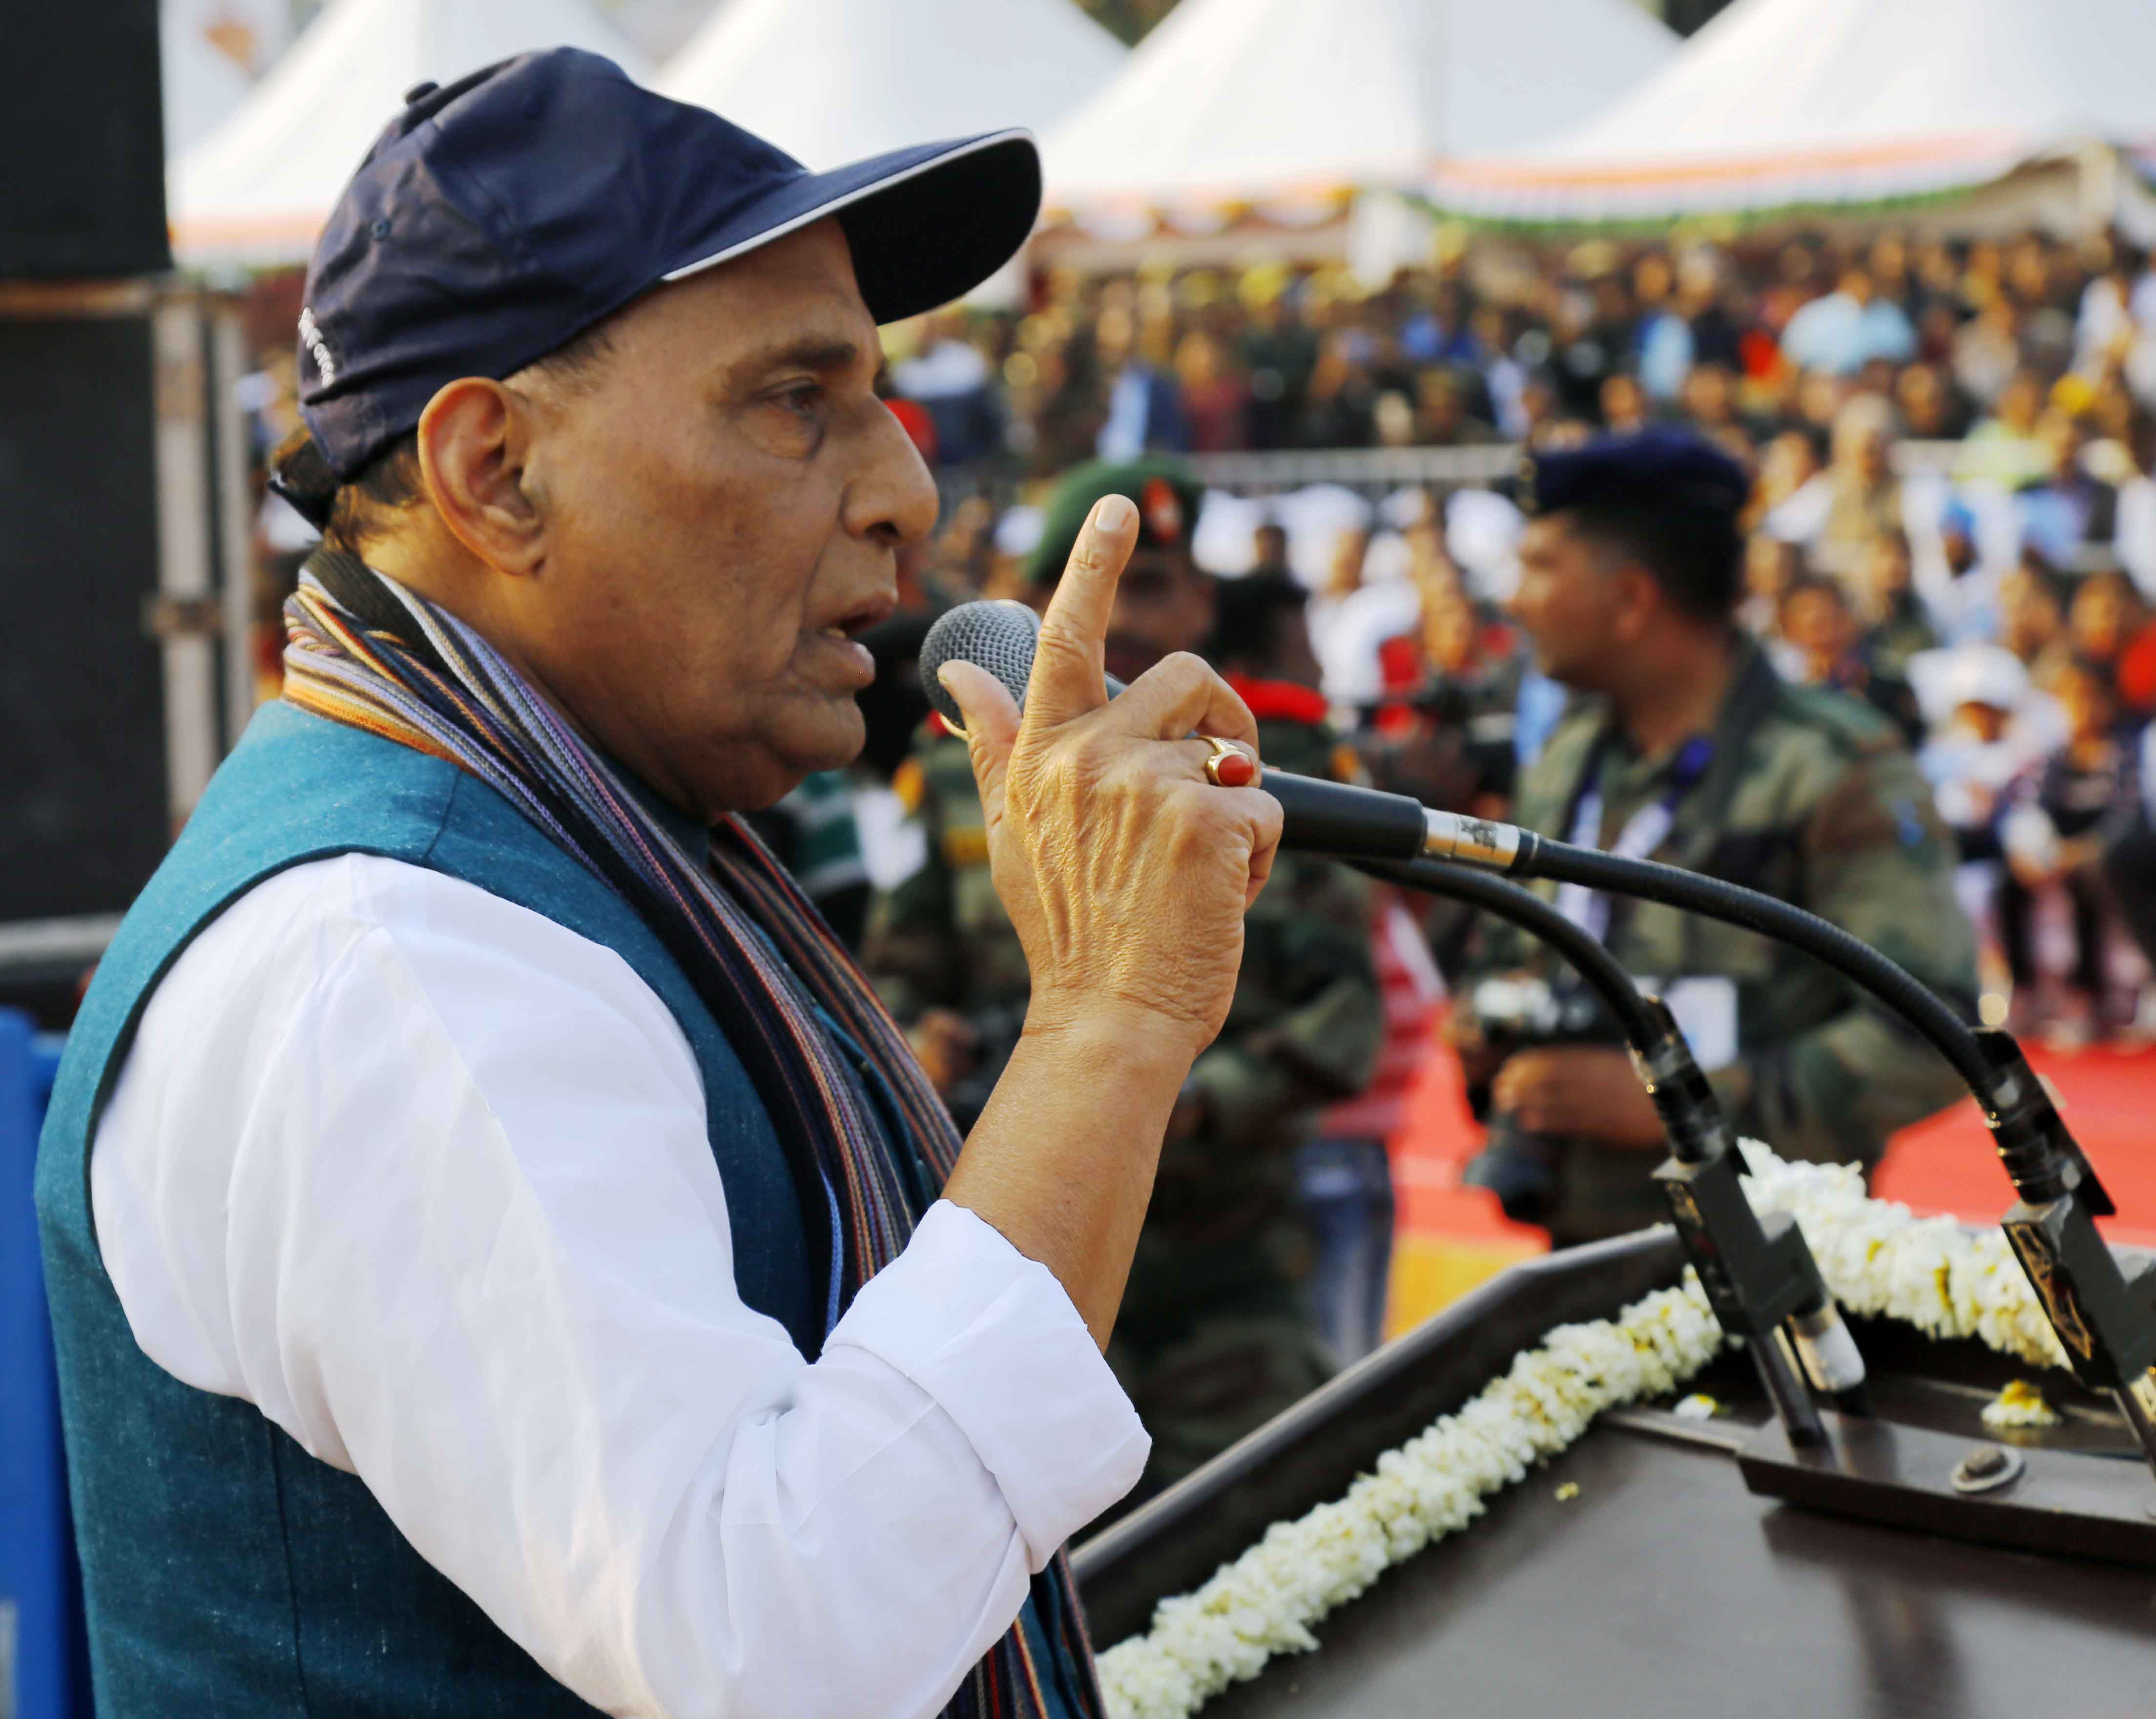 Strive further to increase competitiveness in global market: Rajnath to DPSUs